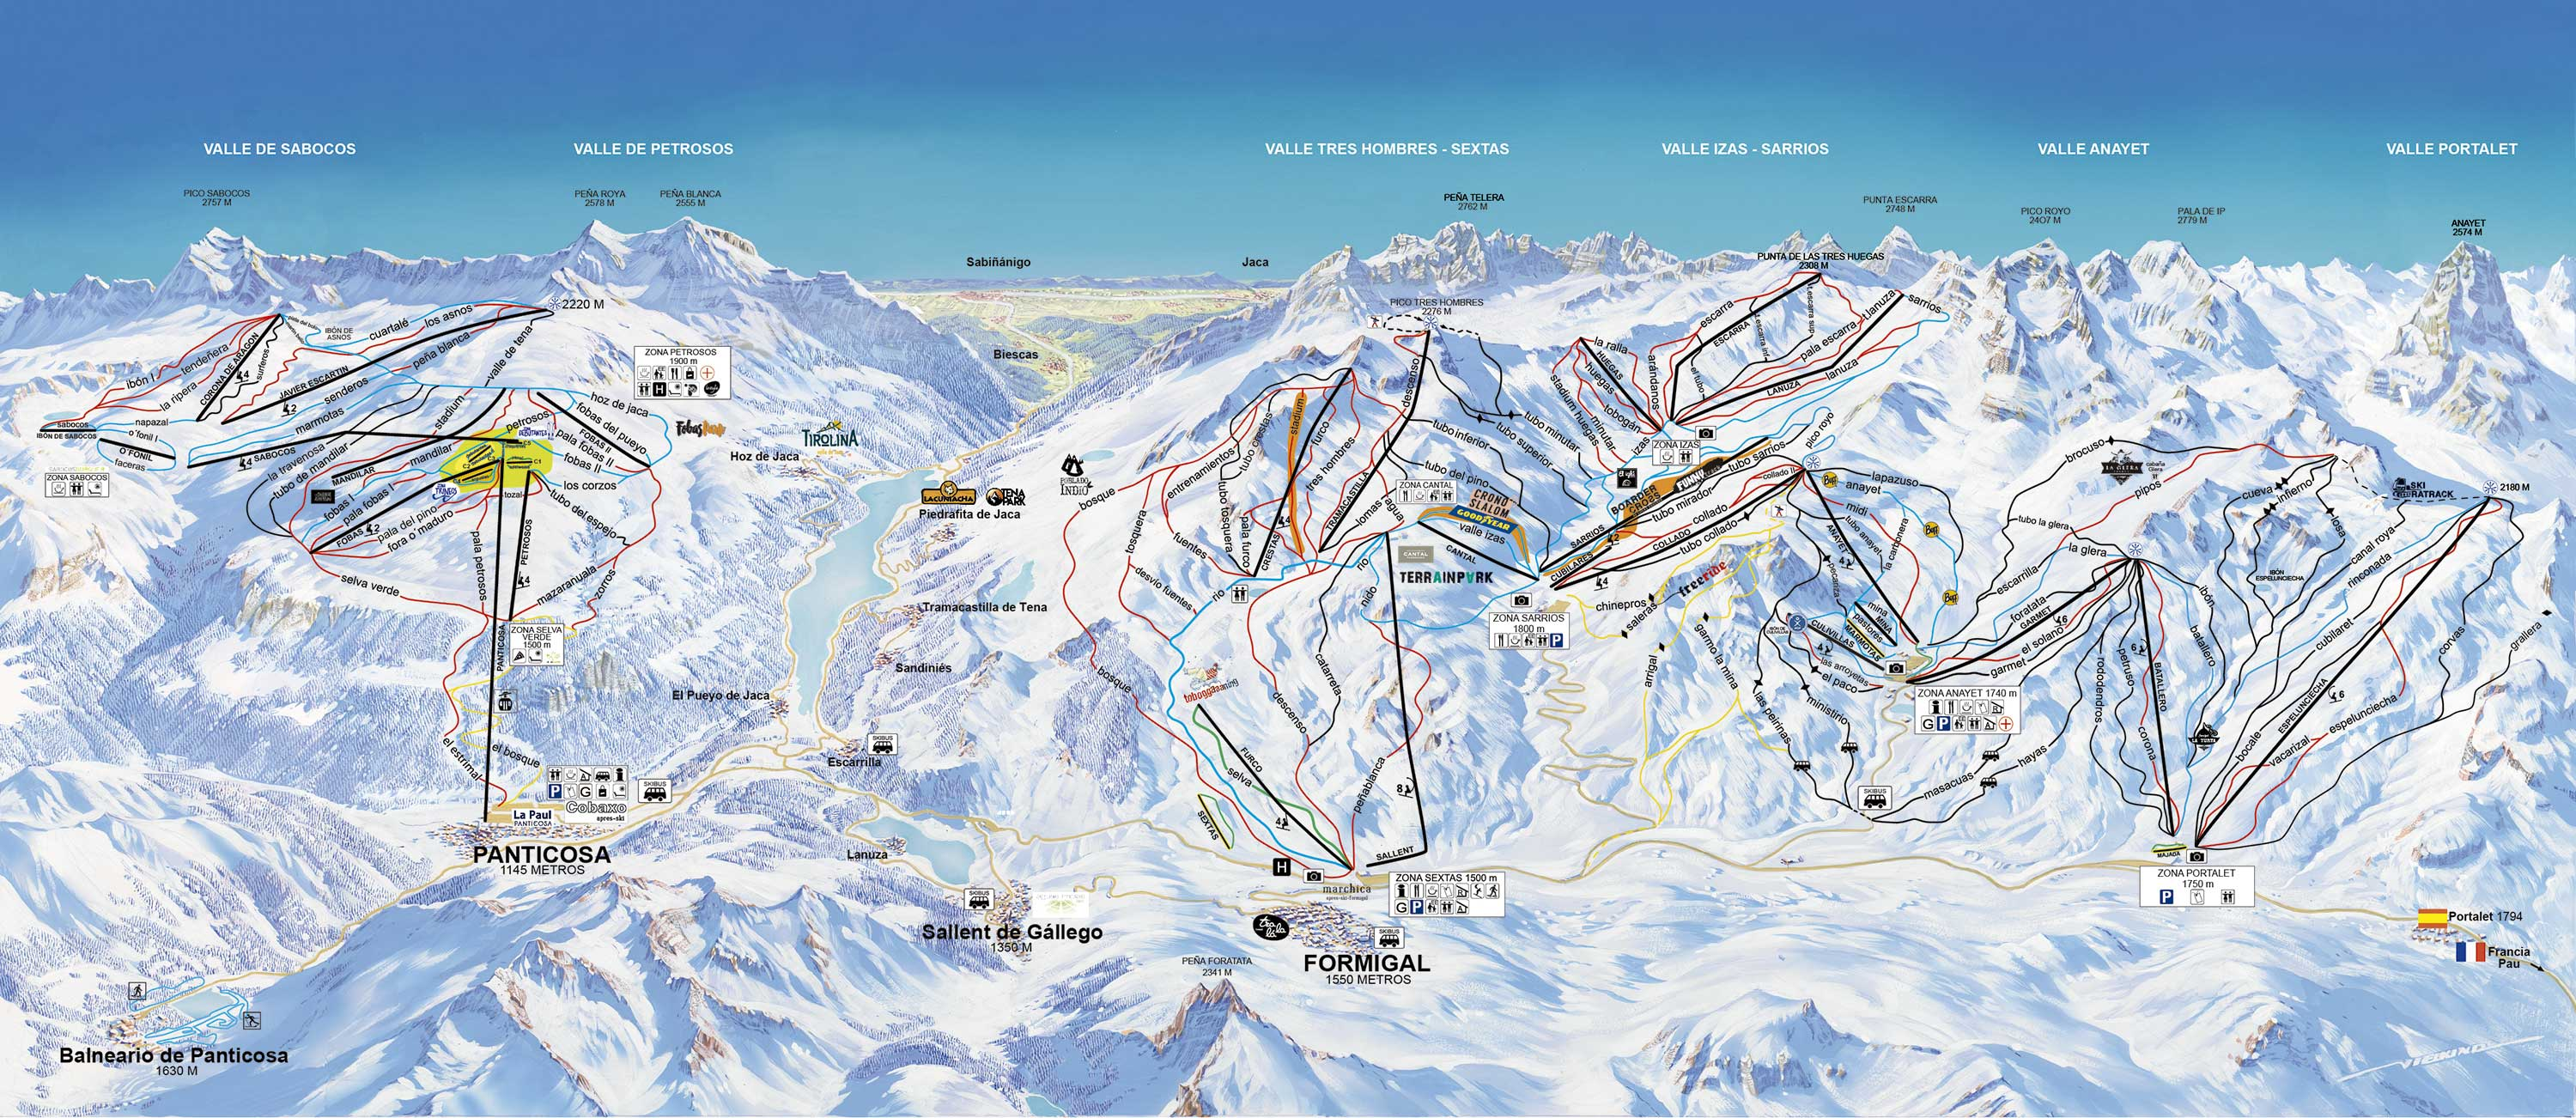 Panticosa Piste / Trail Map